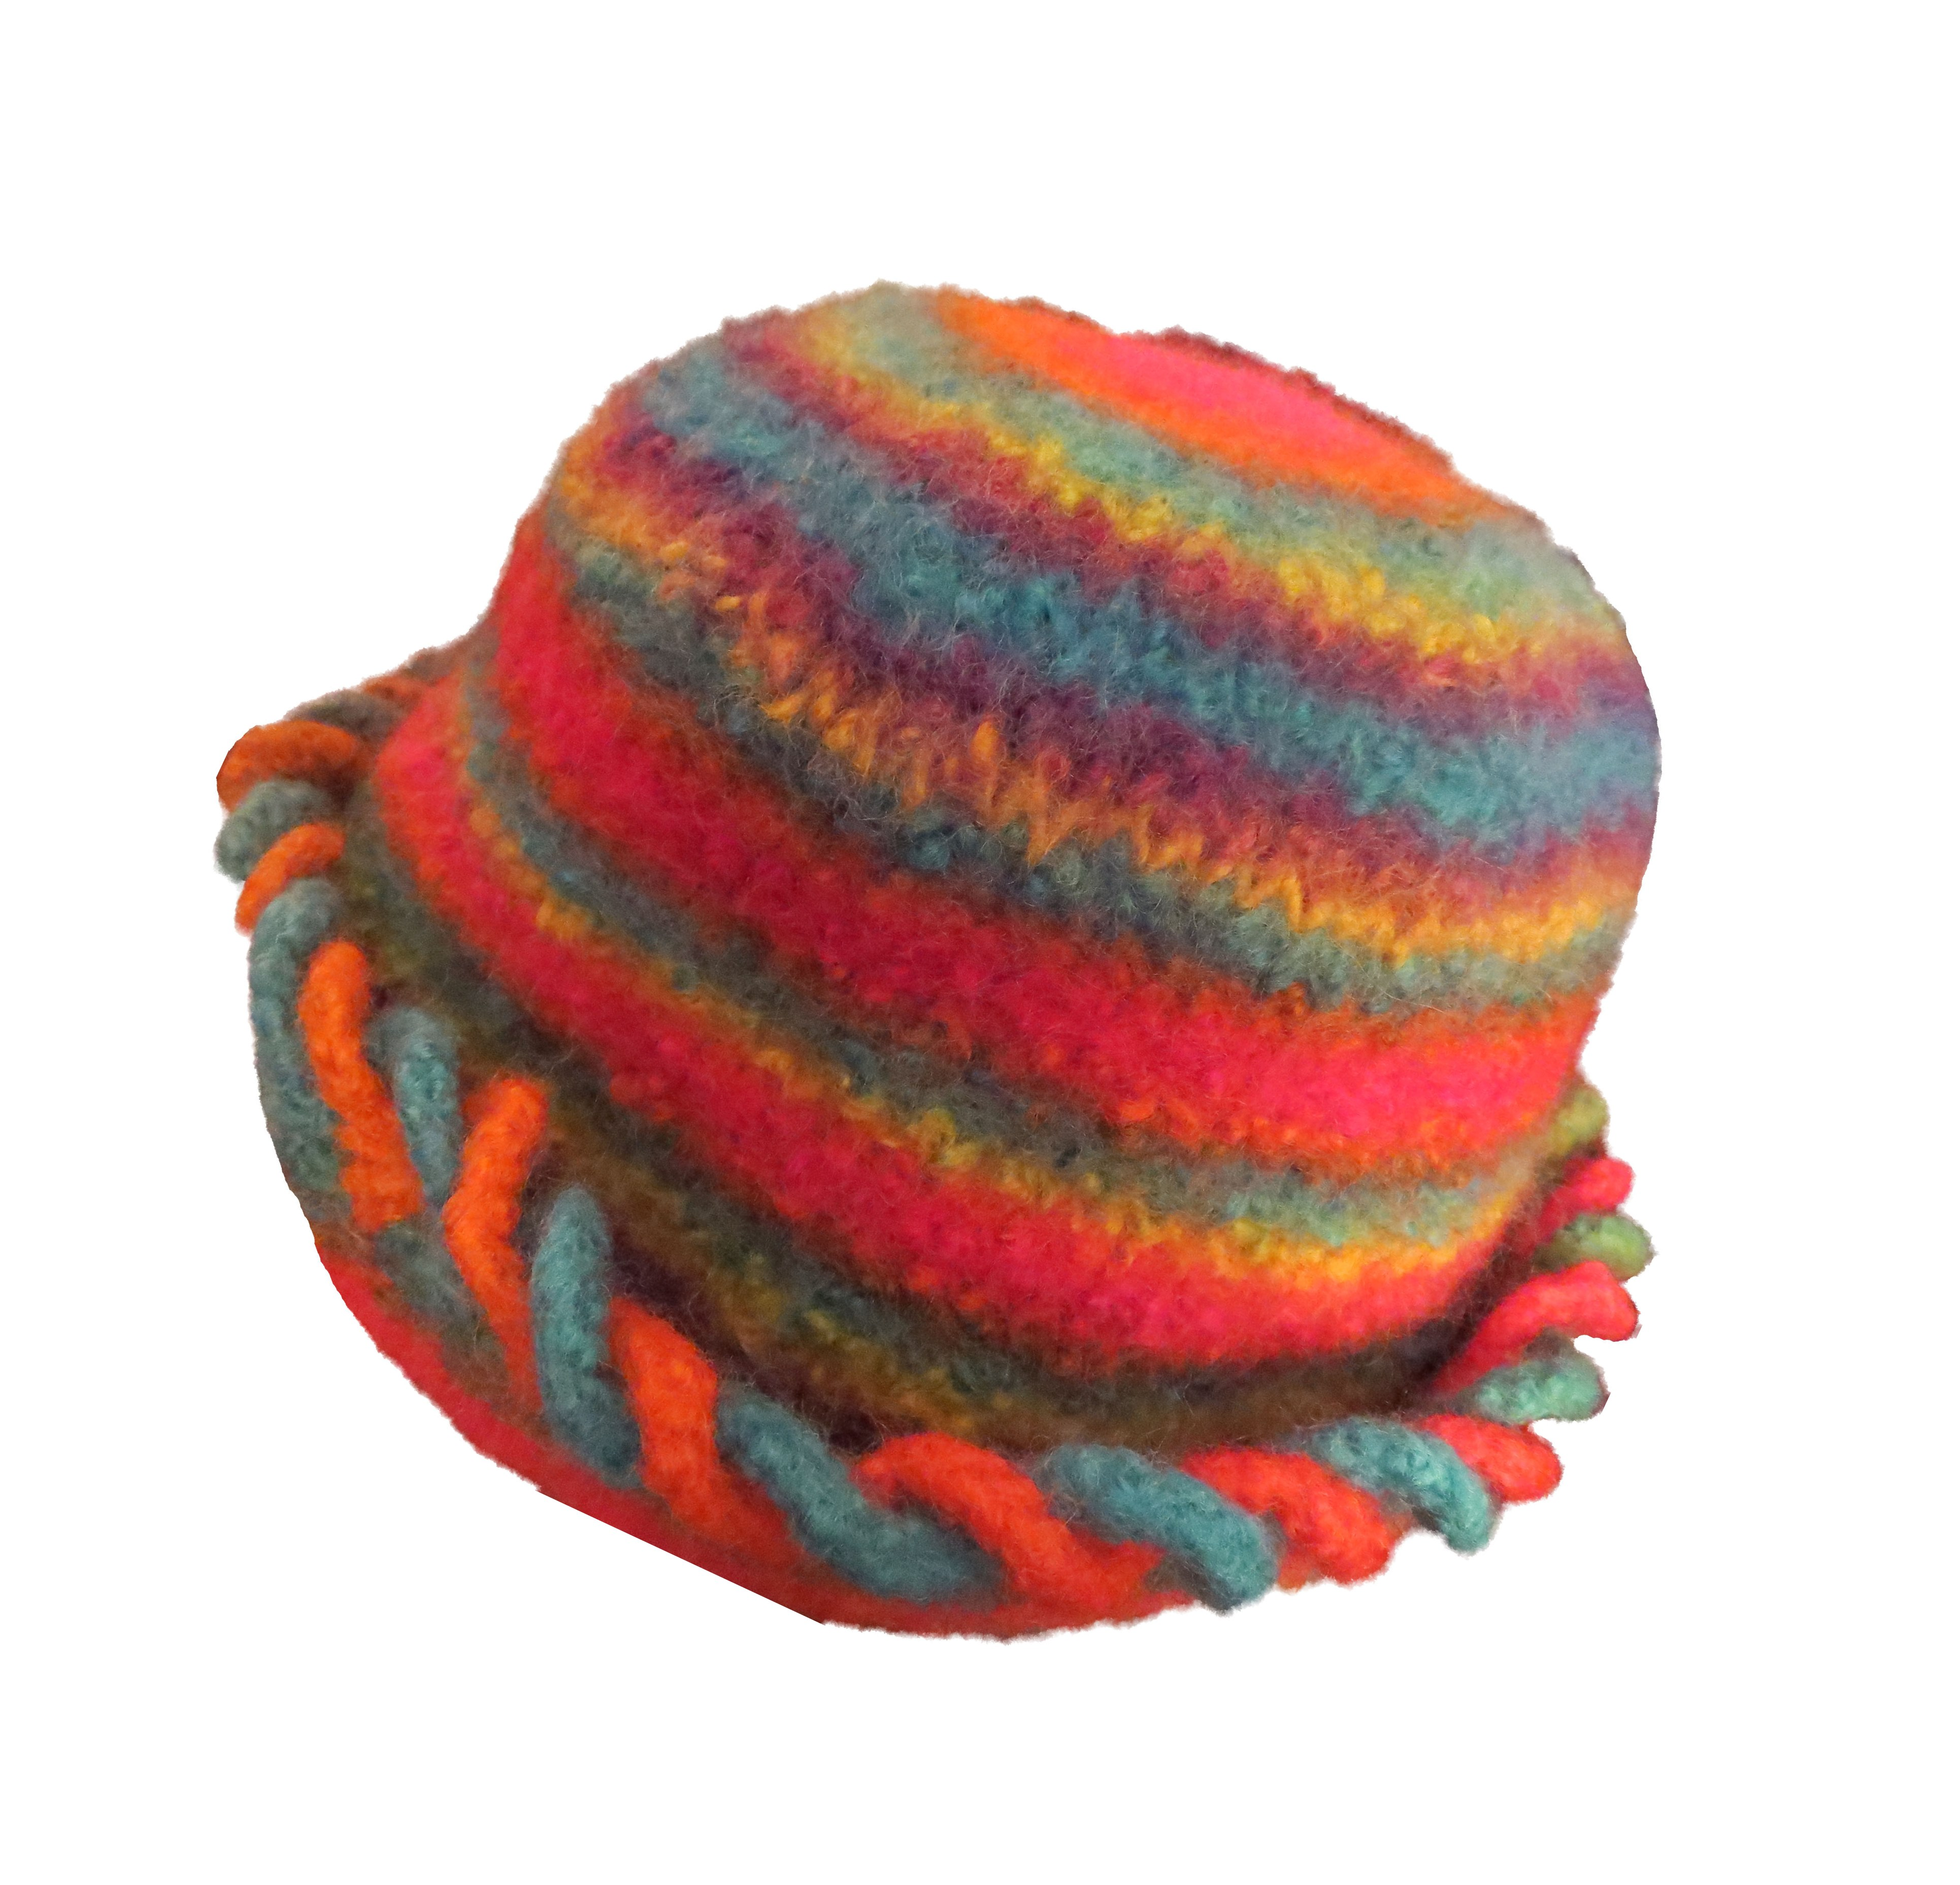 Felted Hats | Marcie B - Hand Knitting and Patterns